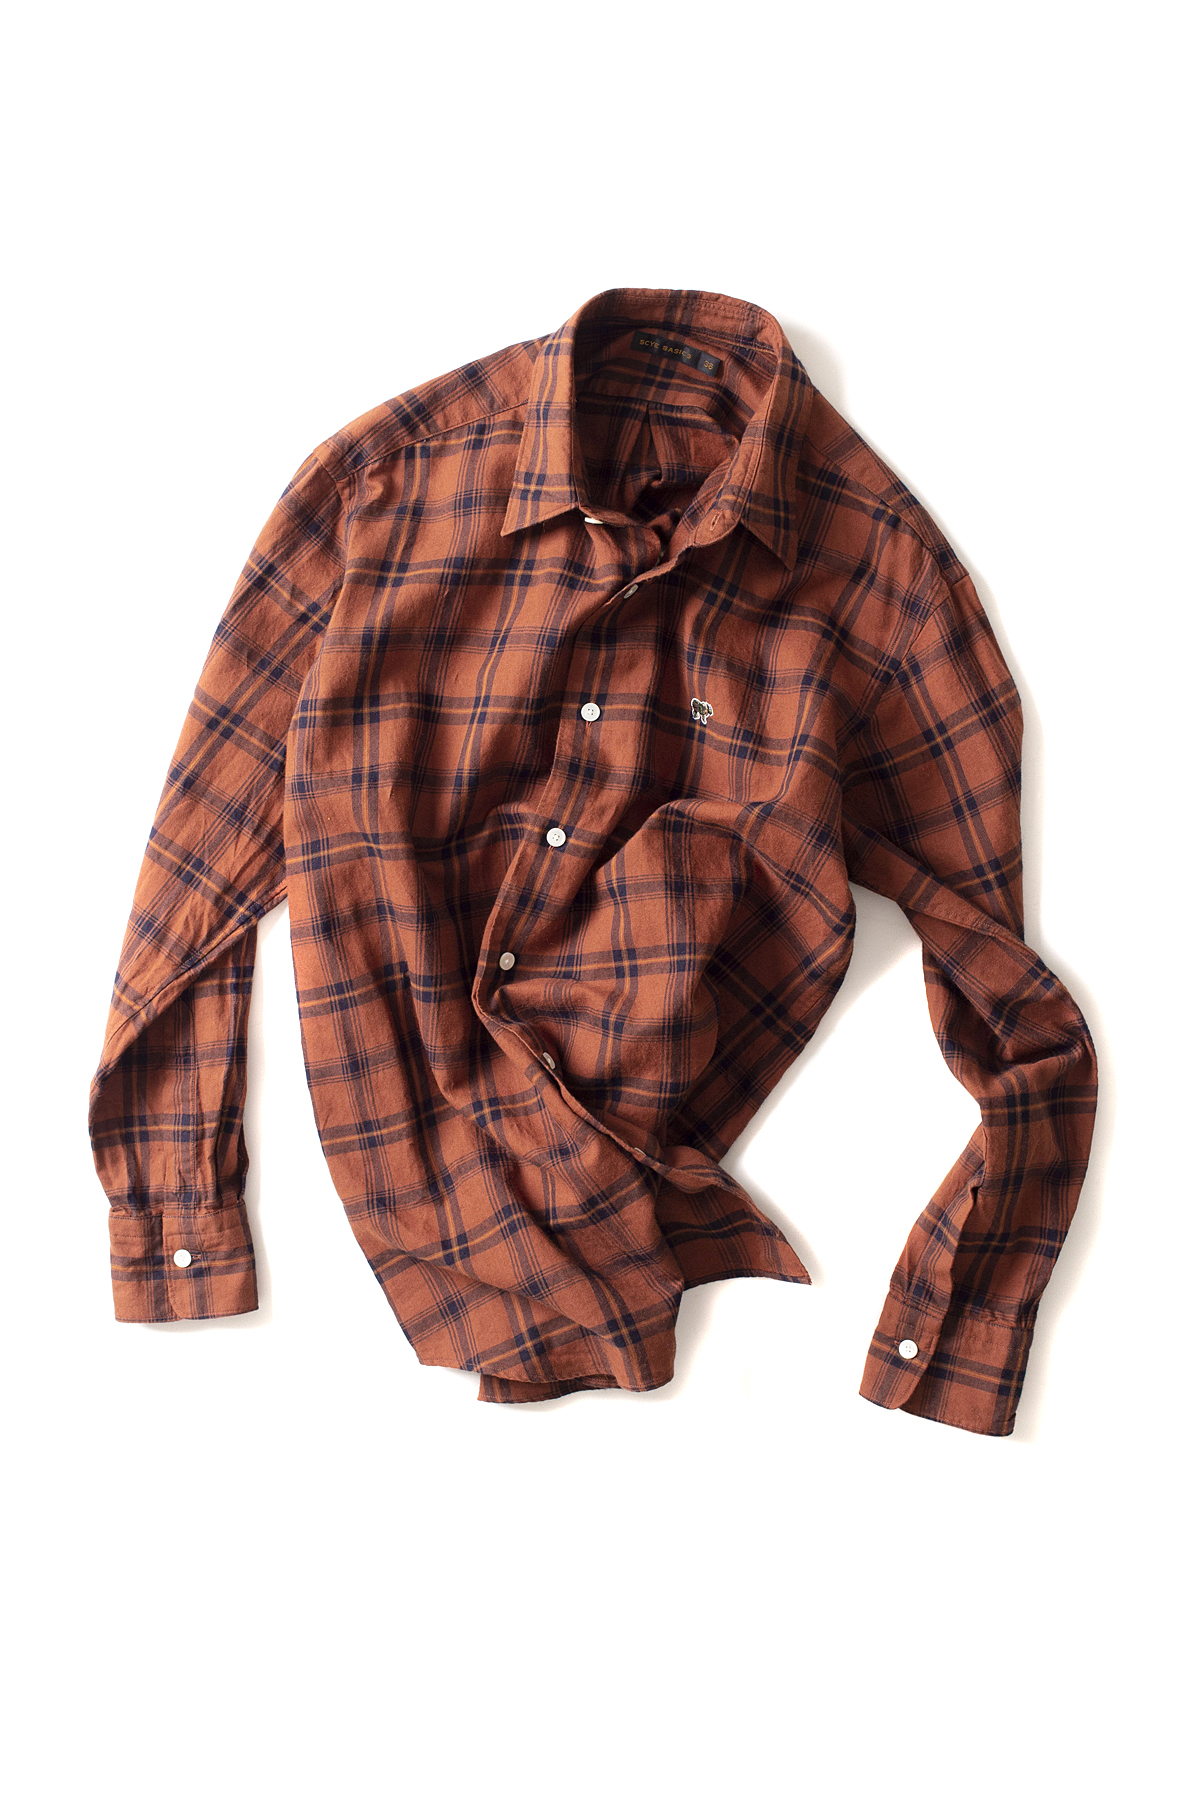 Scye Basics : Checked Cotton Regular Collar Shirts (Brick)